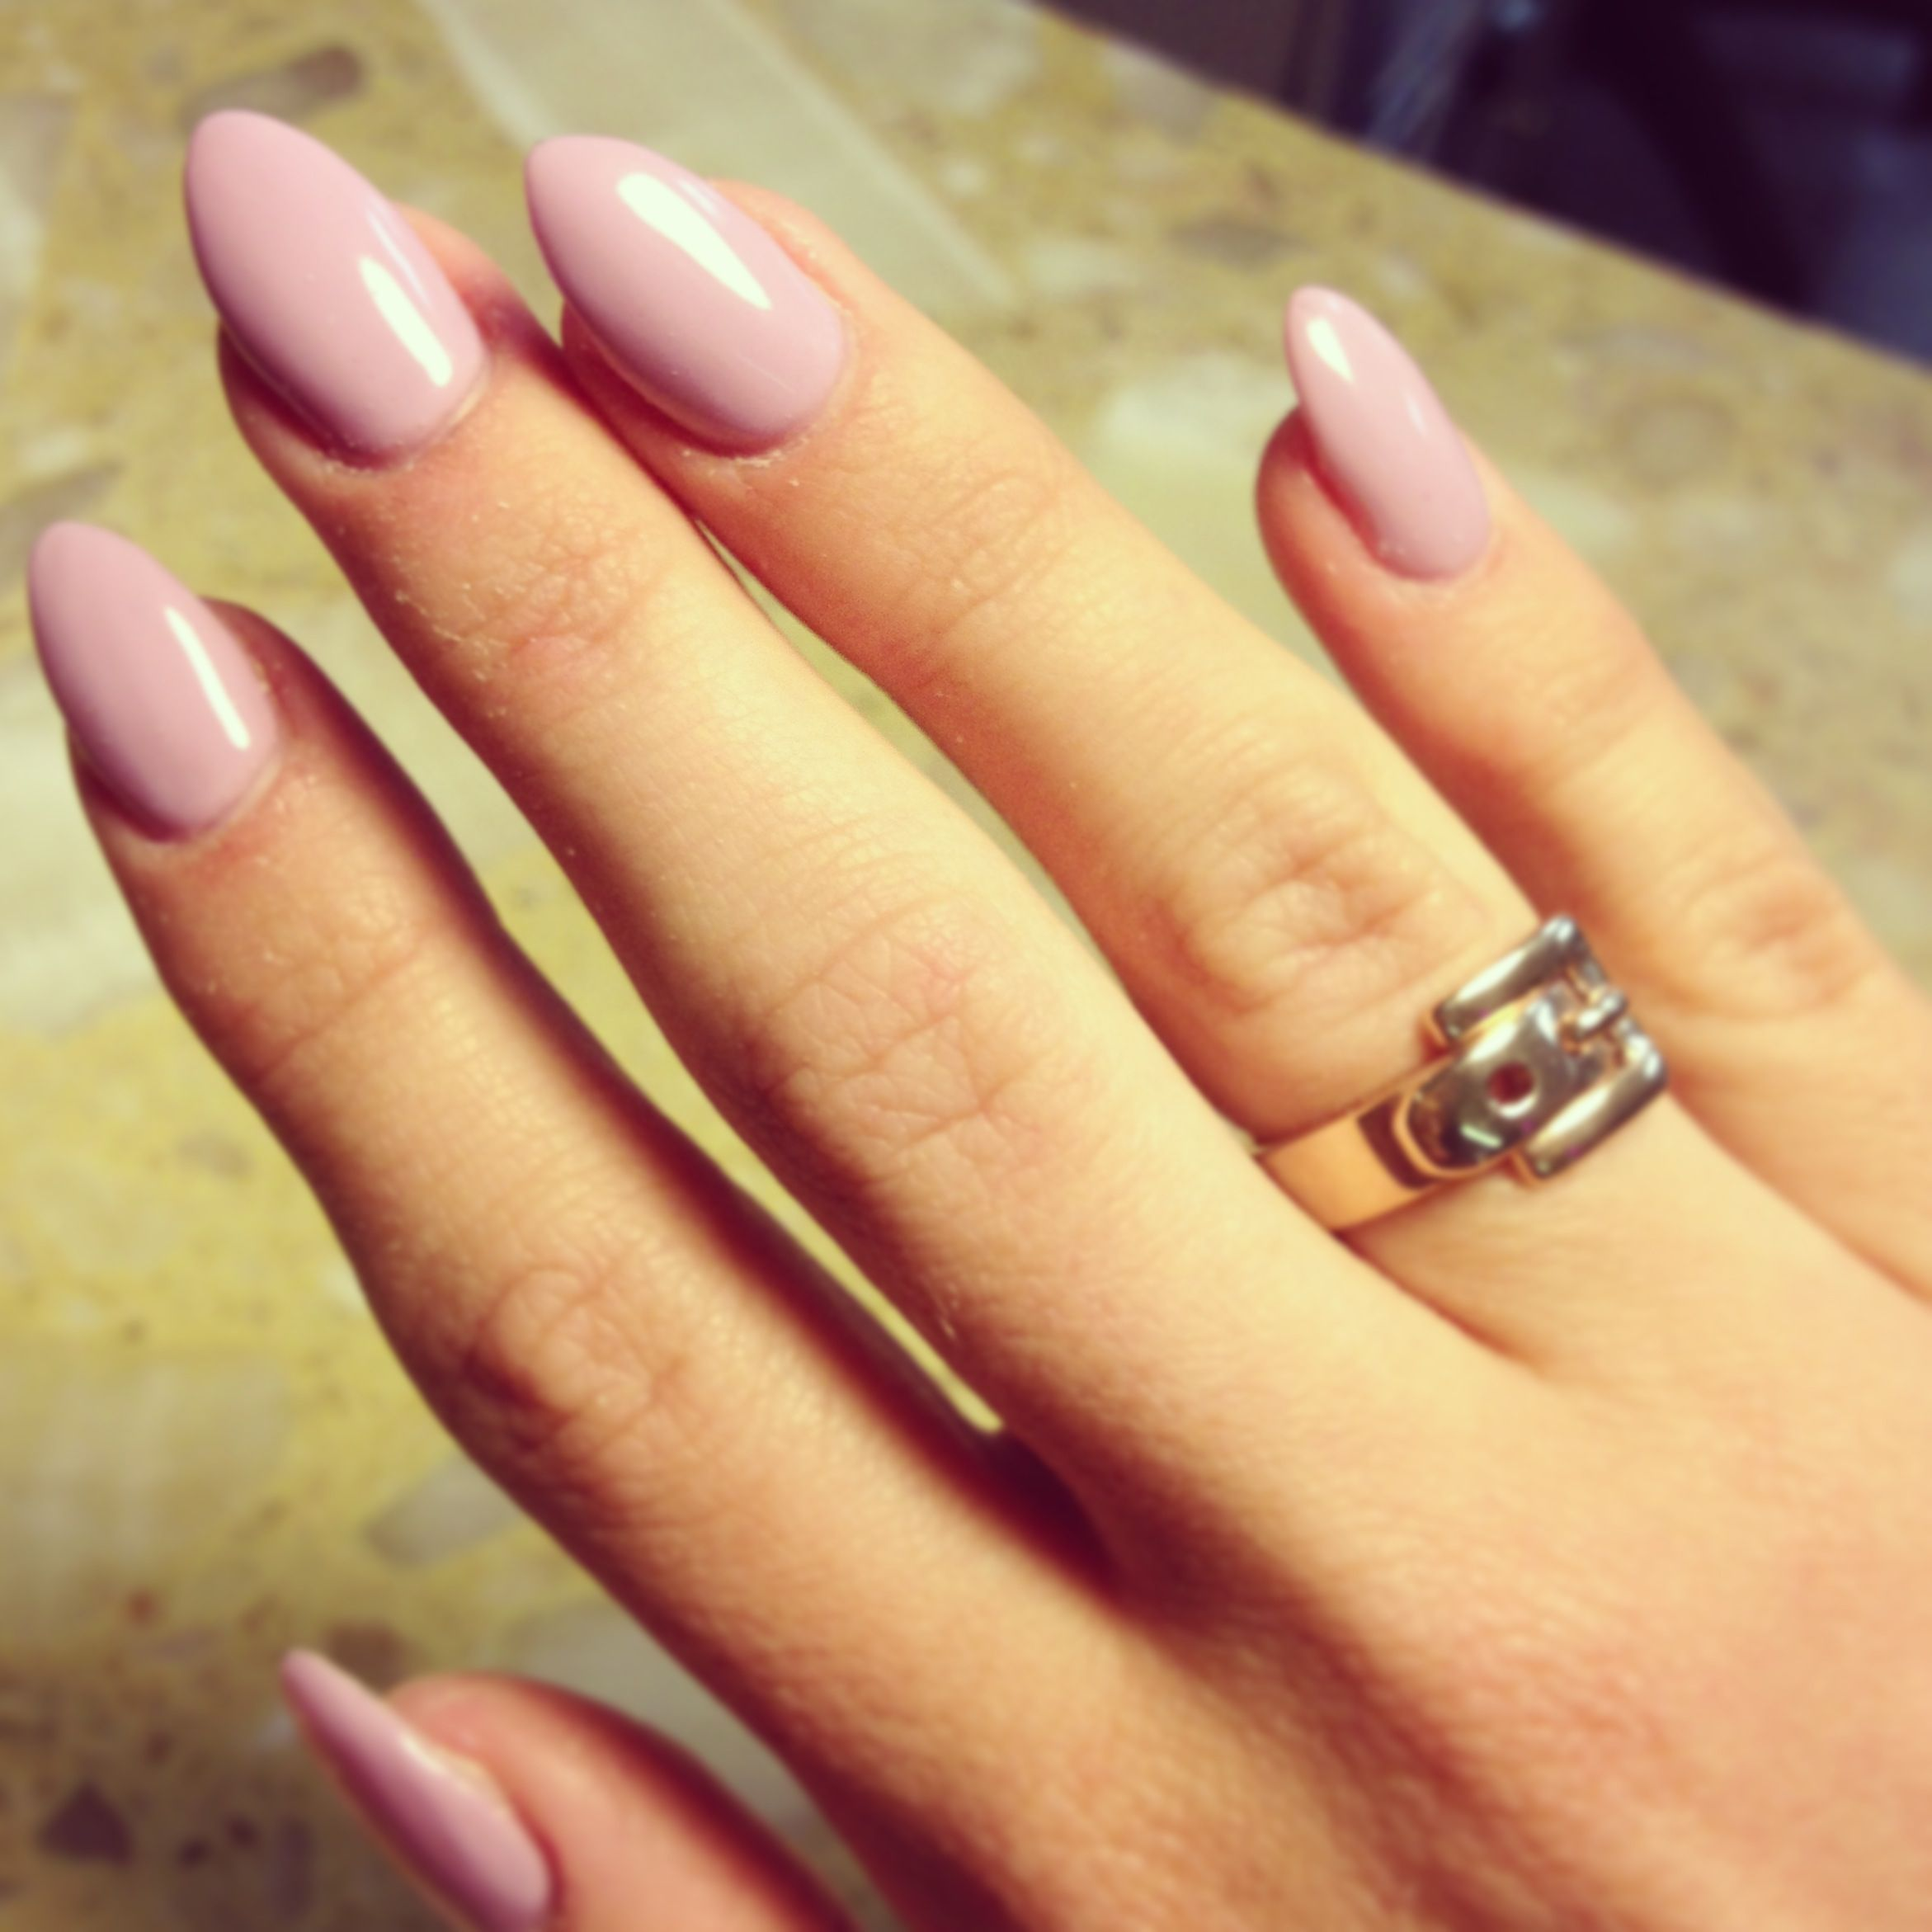 Celebrities Like Adele Rihanna Are Rocking Stiletto Manicures